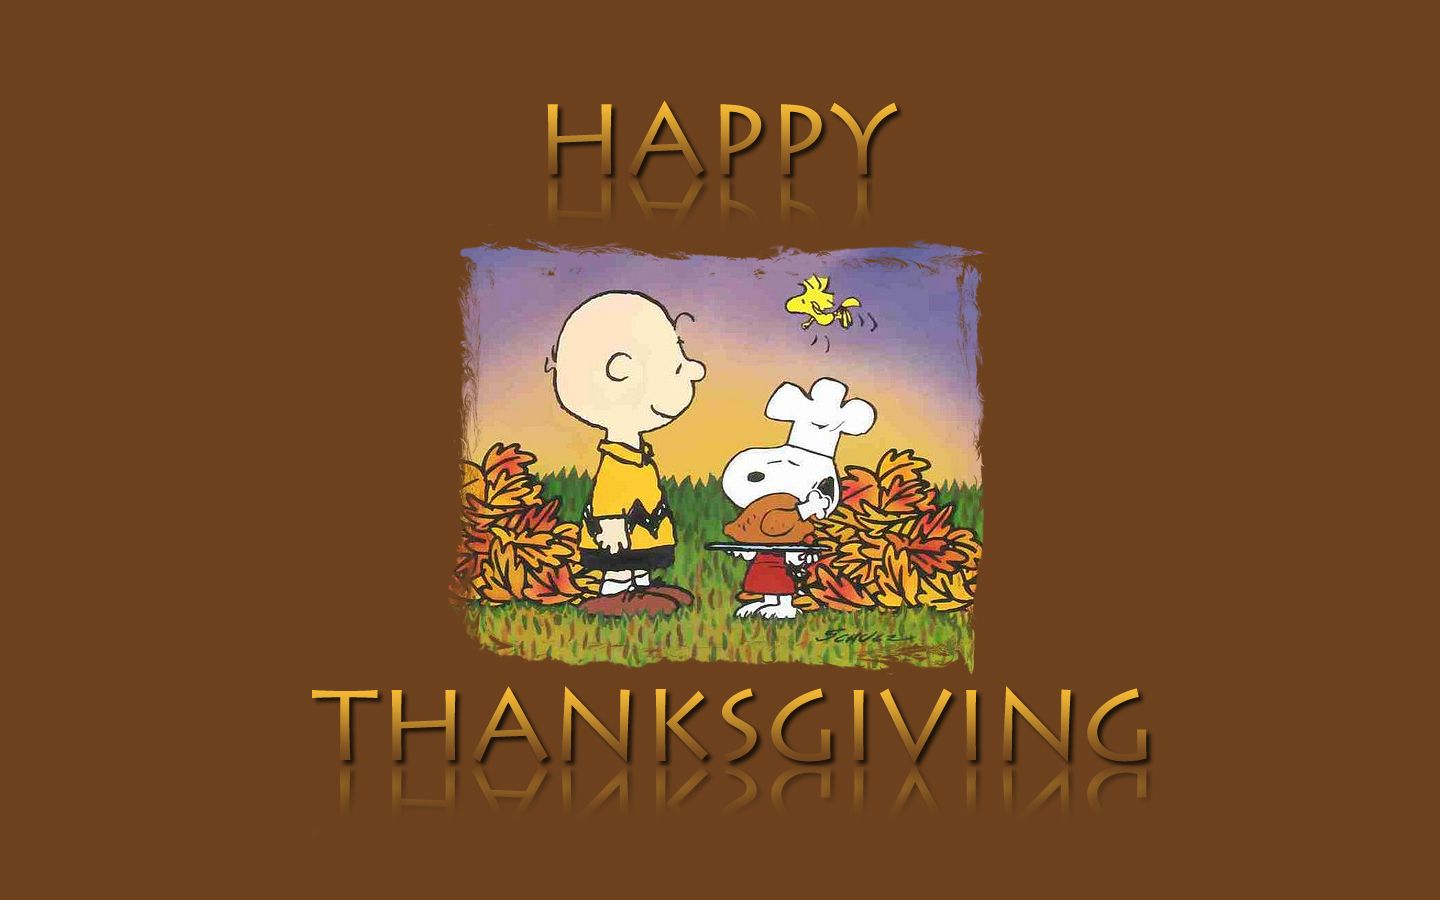 "1440x900 Thanksgiving Snoopy Wallpapers - ModaFinilsale""> · Download · 1270x729 Funny Thanksgiving Wallpaper ..."